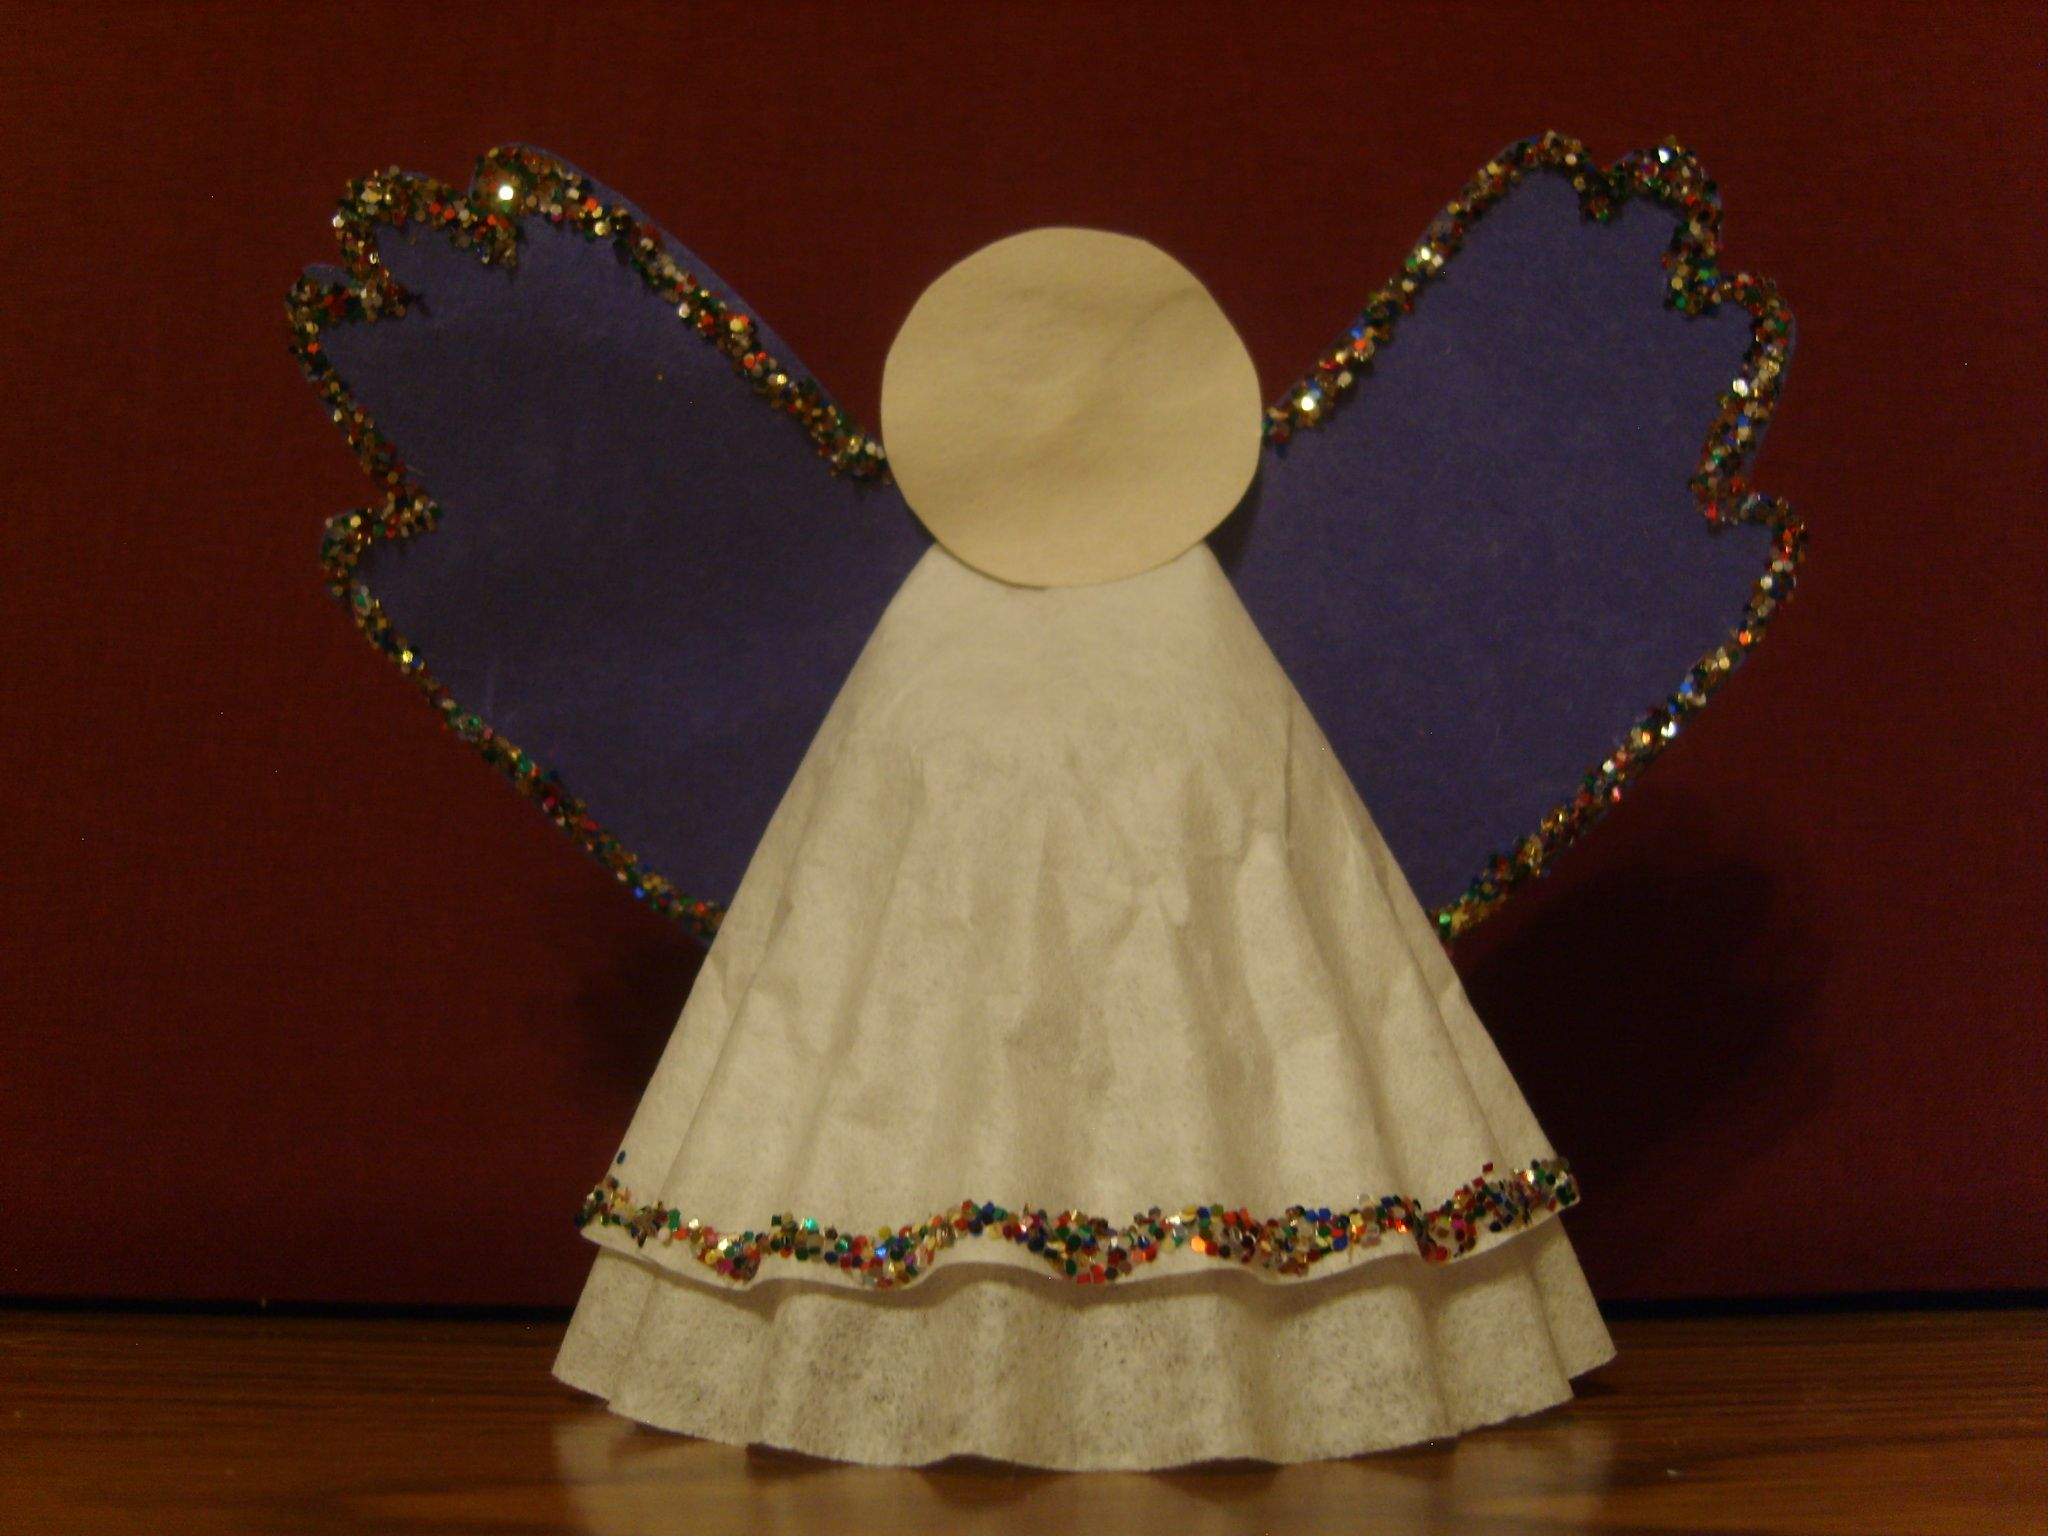 Sonbeams  Childrens Christmas Crafts Homemade Angels